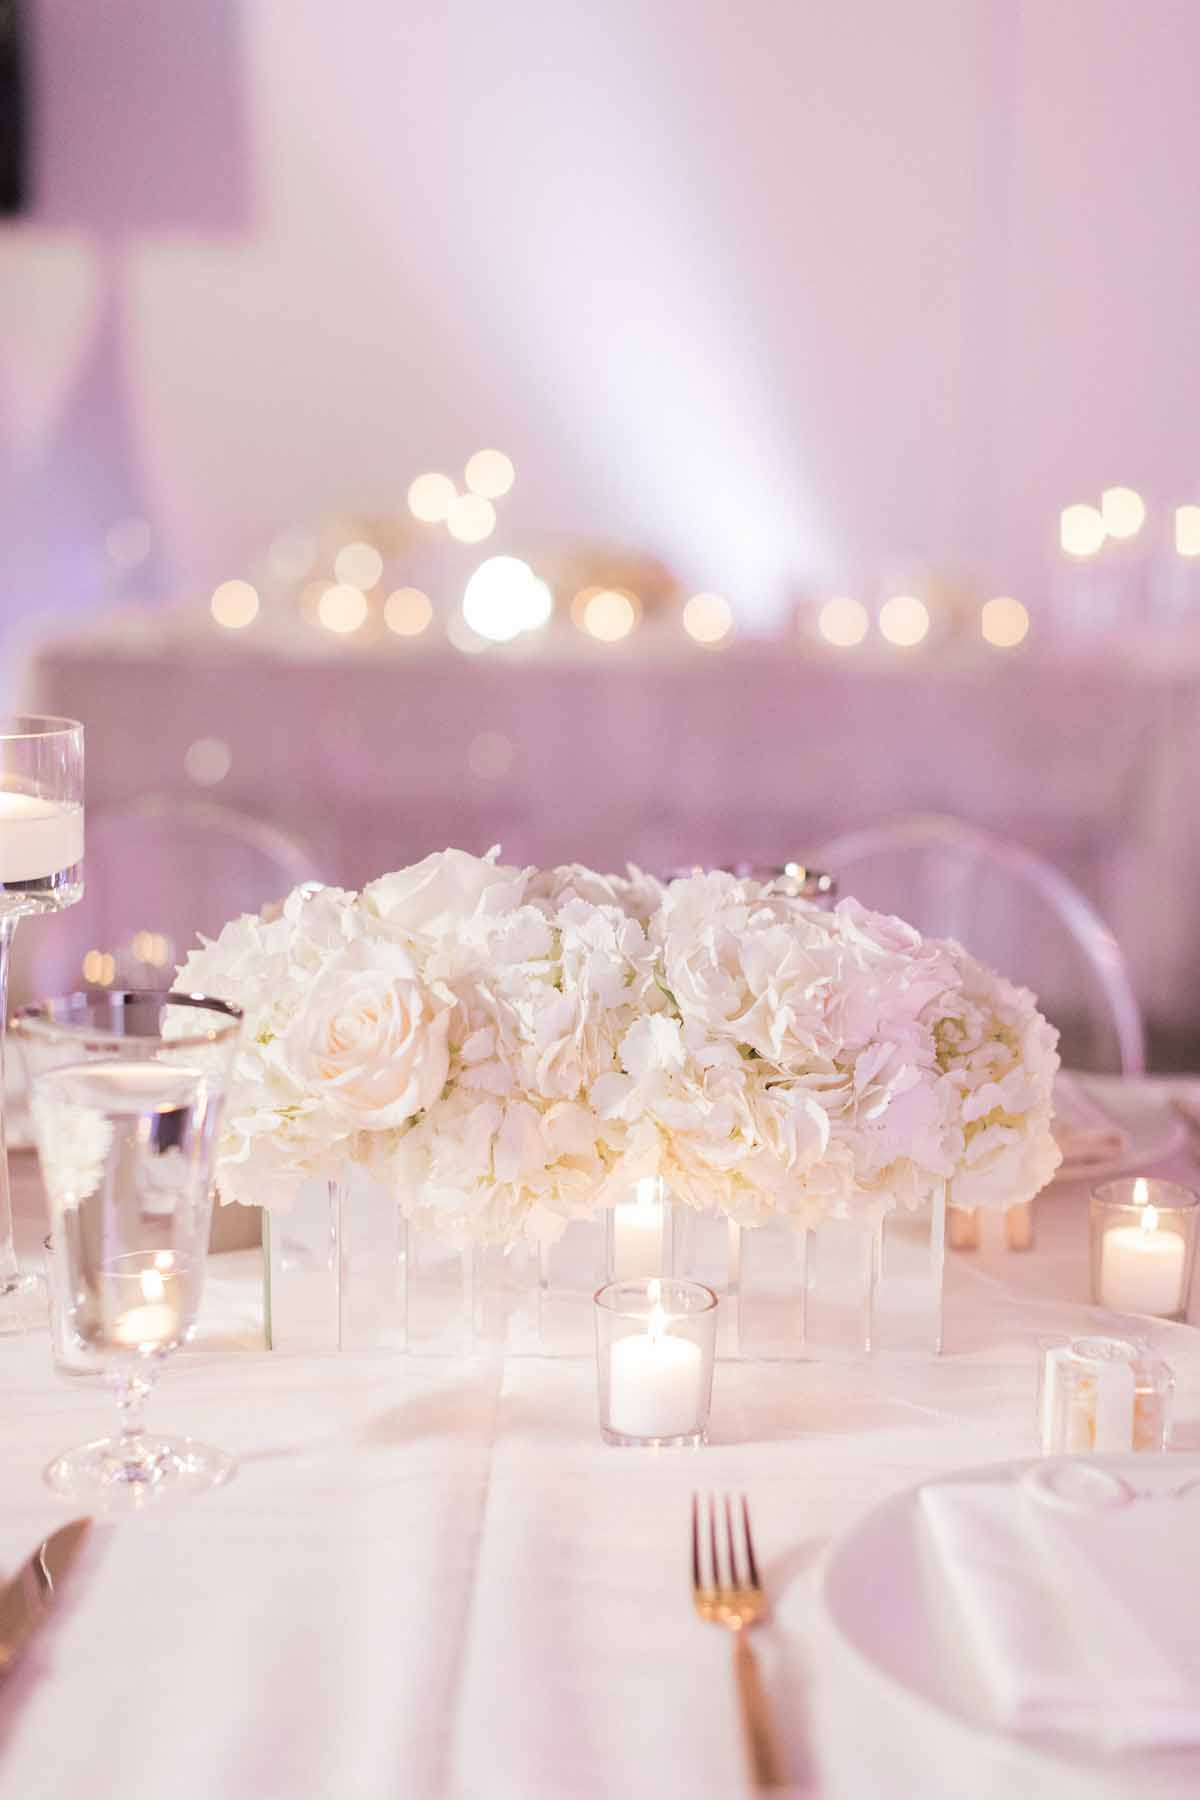 Centerpiece of white hydrangea and white roses and votive candles at Canvas Event Space wedding